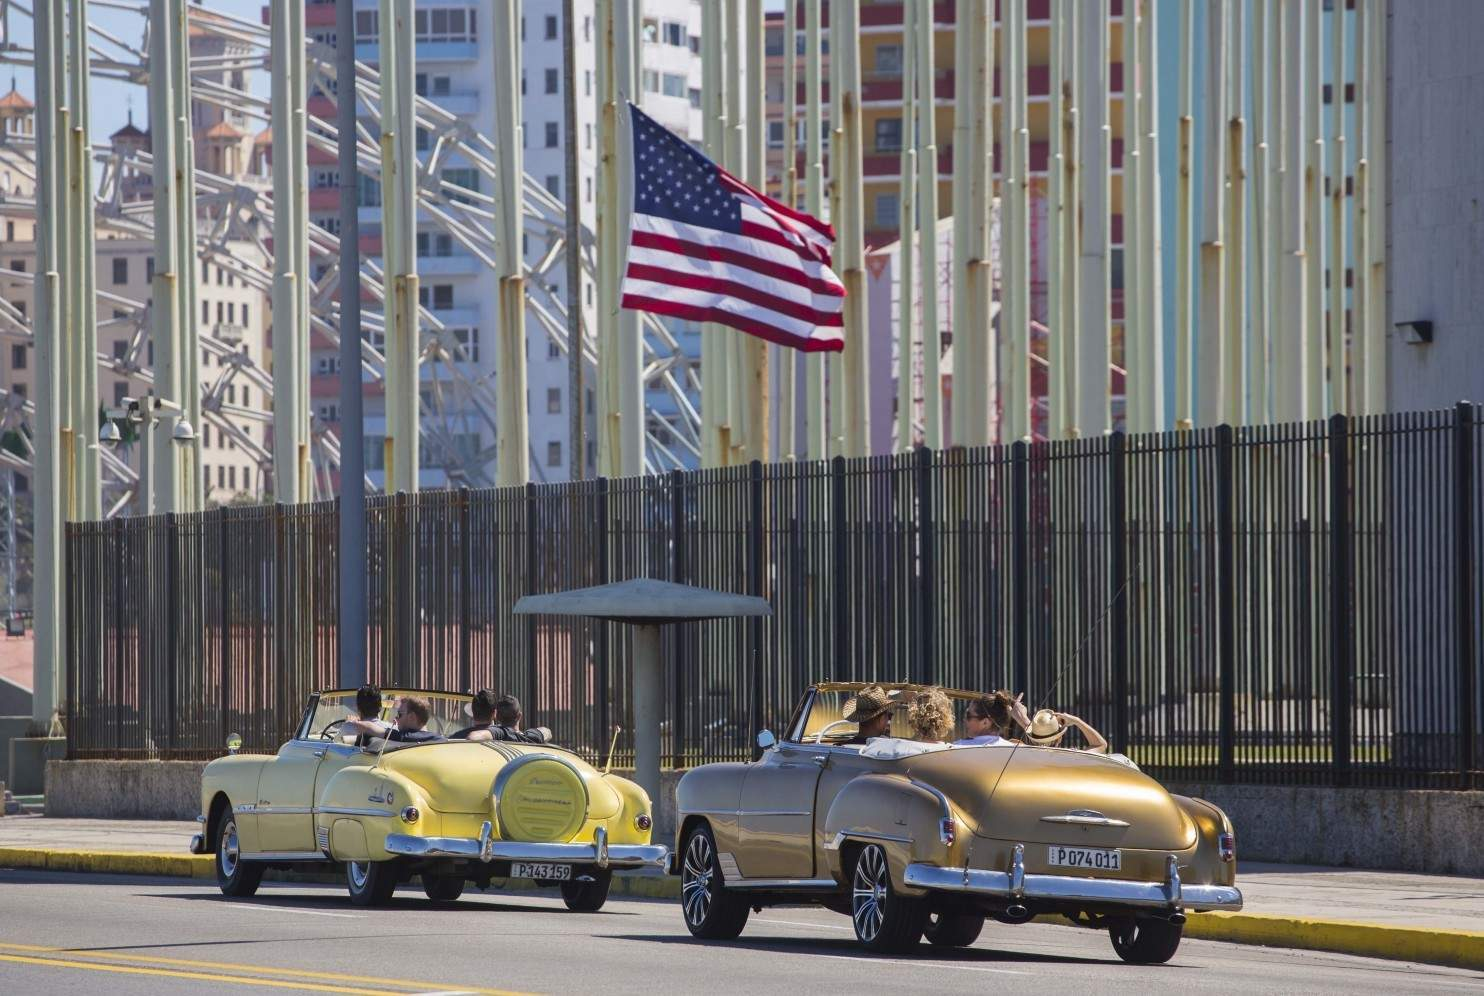 President Obama must make the trip to Cuba count